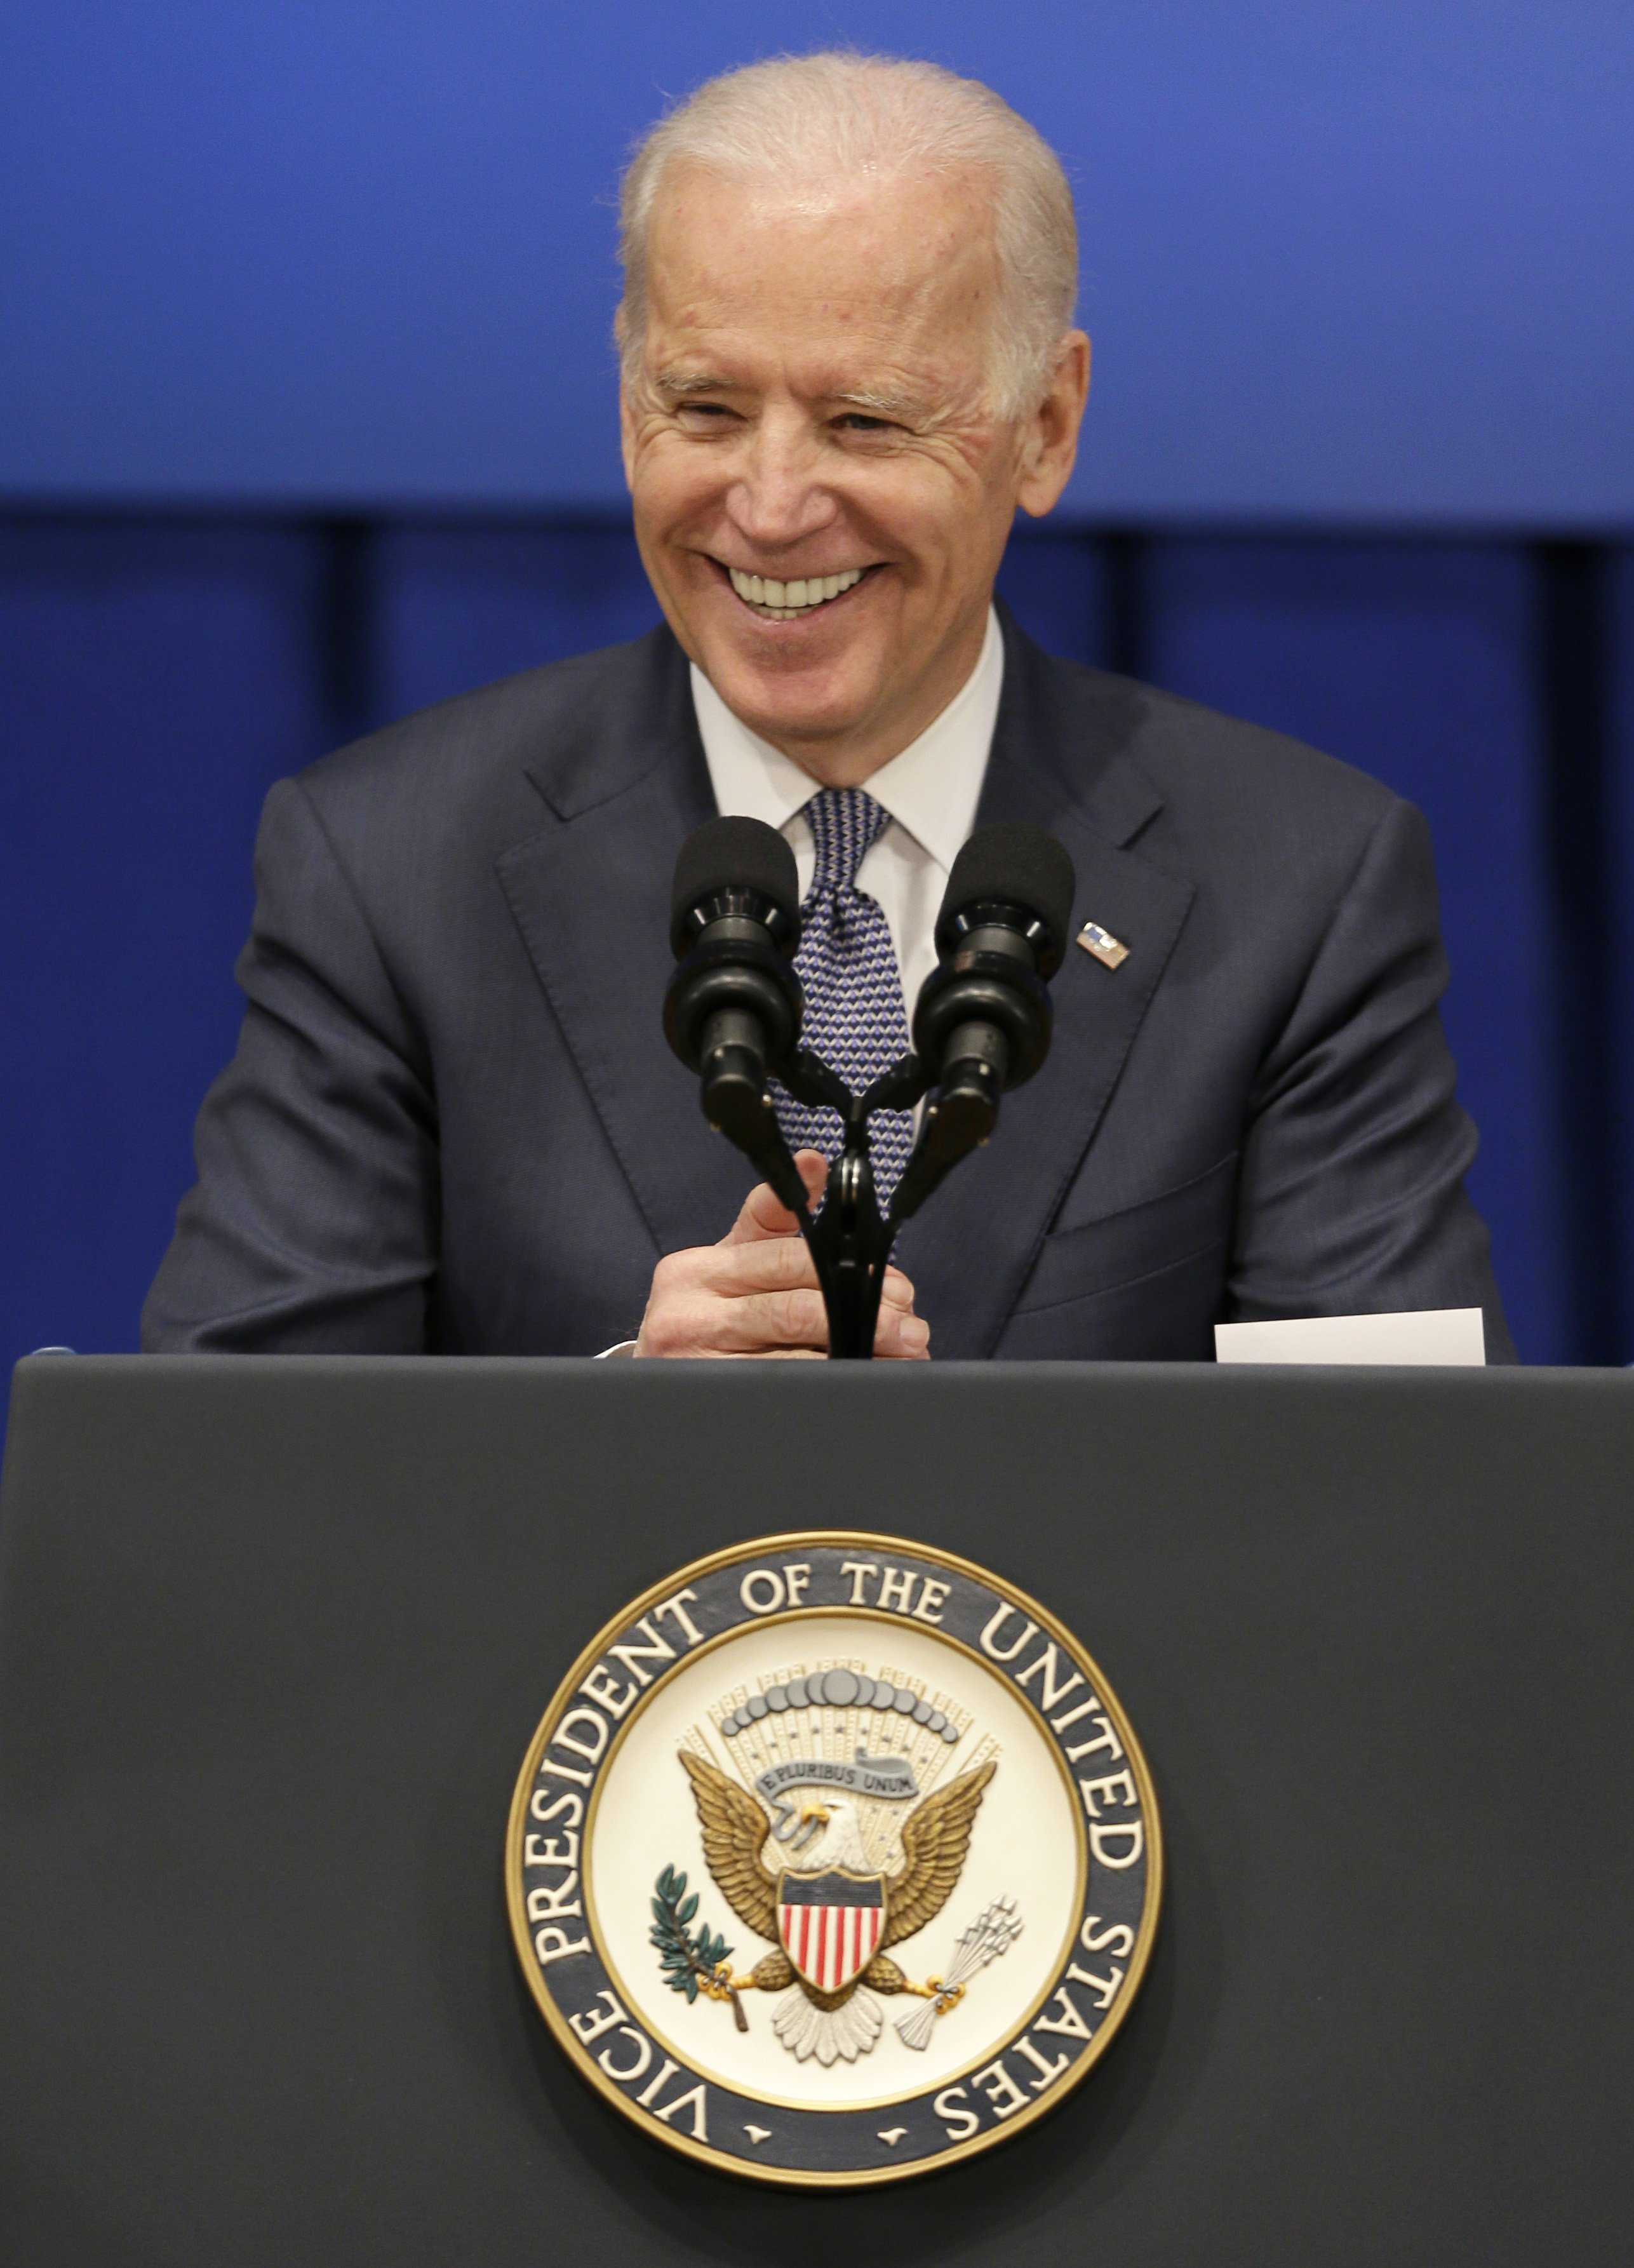 Vice President Joe Biden smiles as he speaks about the economy and the Obama administration's policies on Feb. 12, 2015, at Drake University in Des Moines, Iowa.